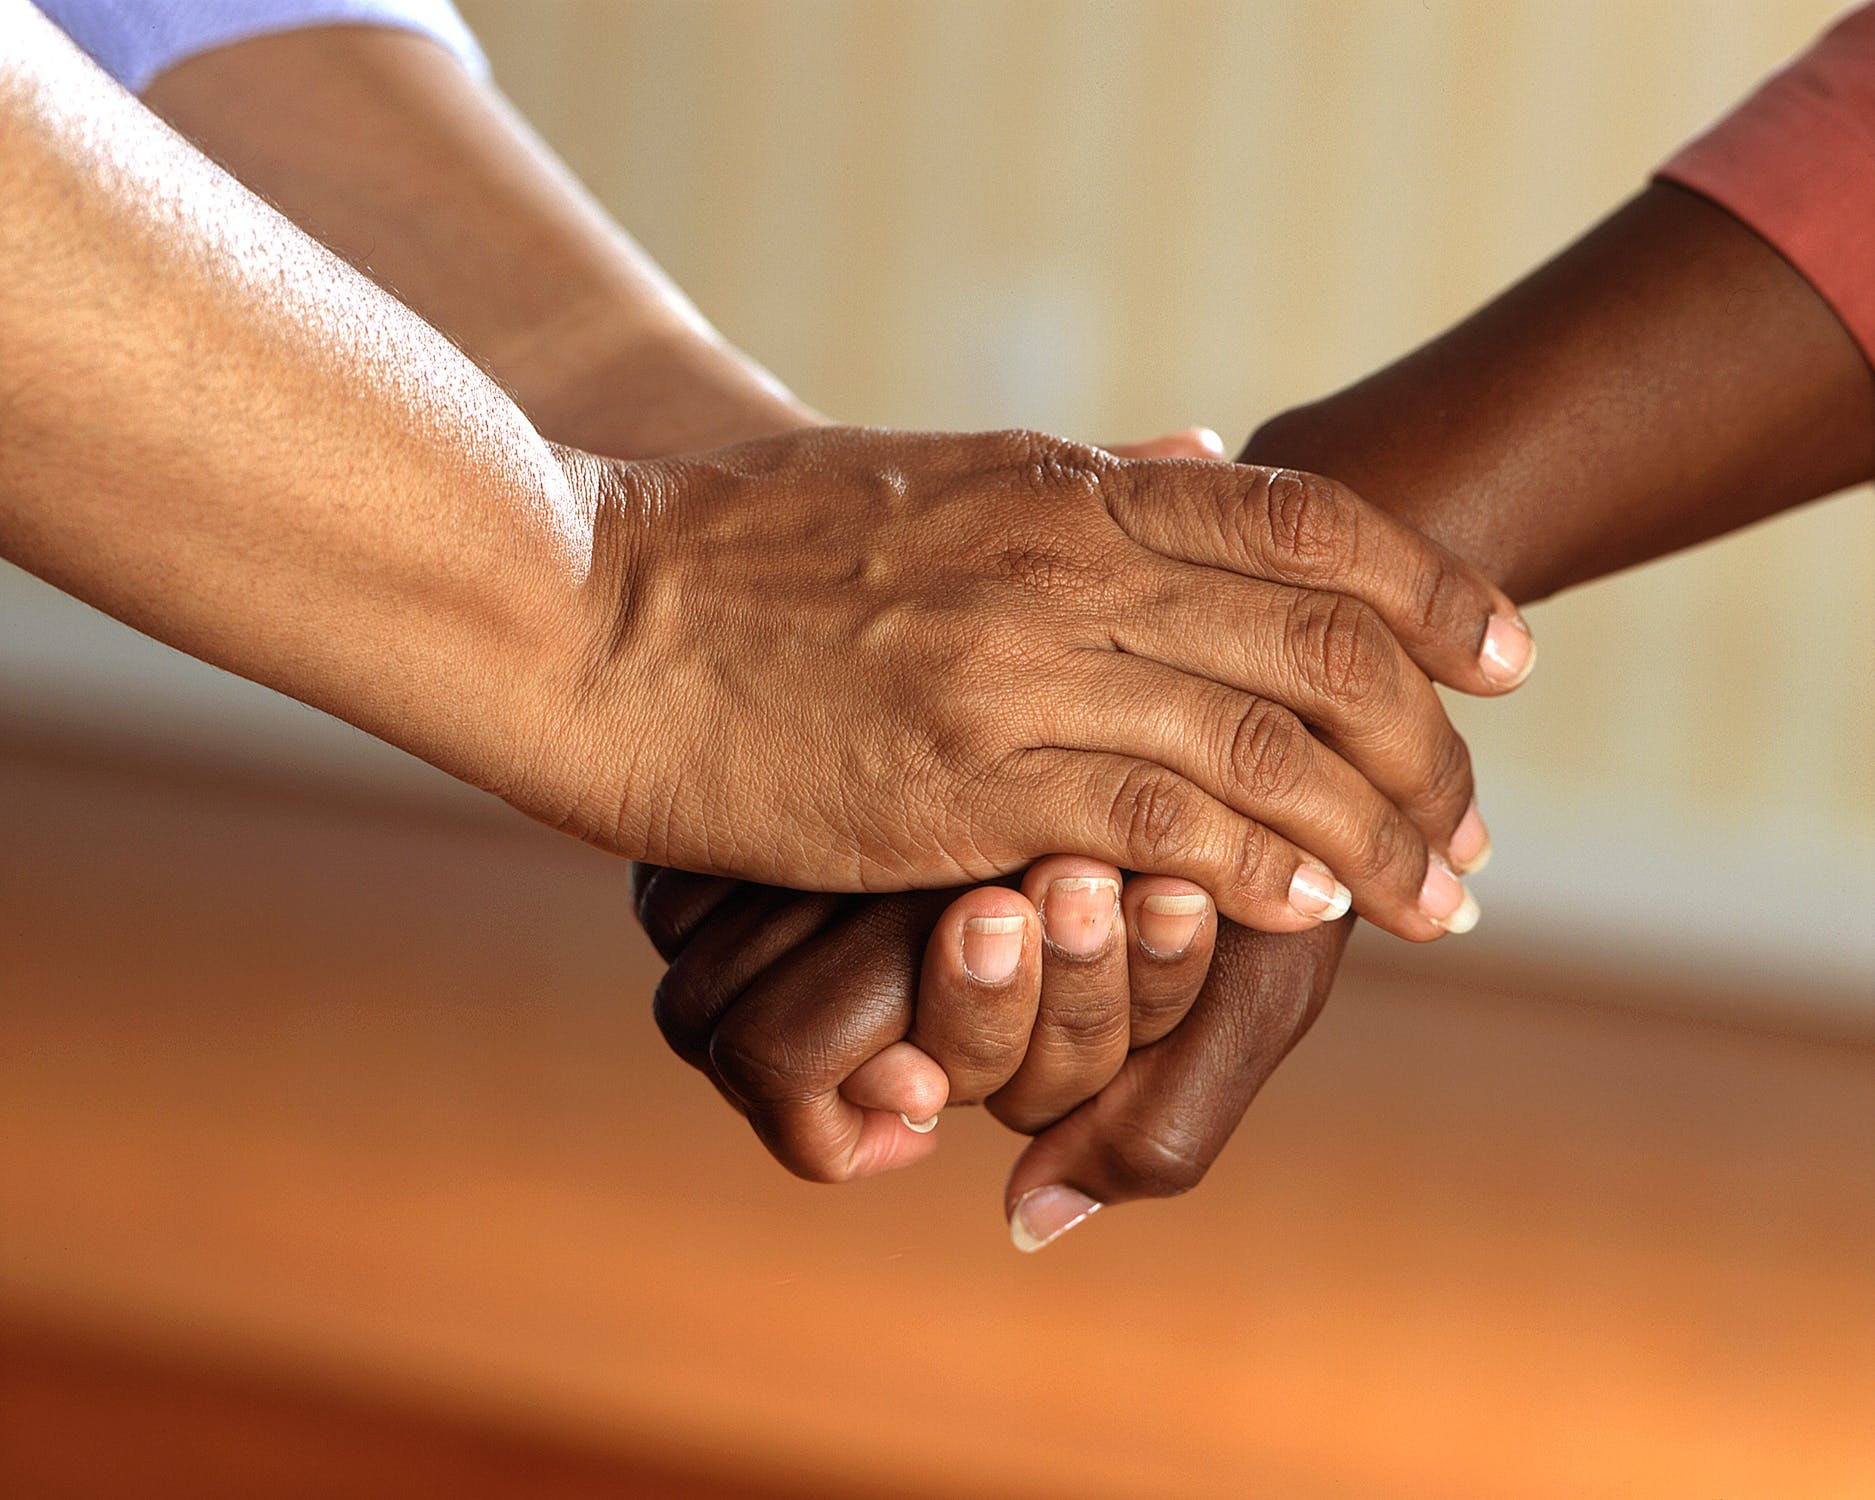 A close up of two hands holding. Photo by pexels user Pixabay. Used courtesy of pexels.com.